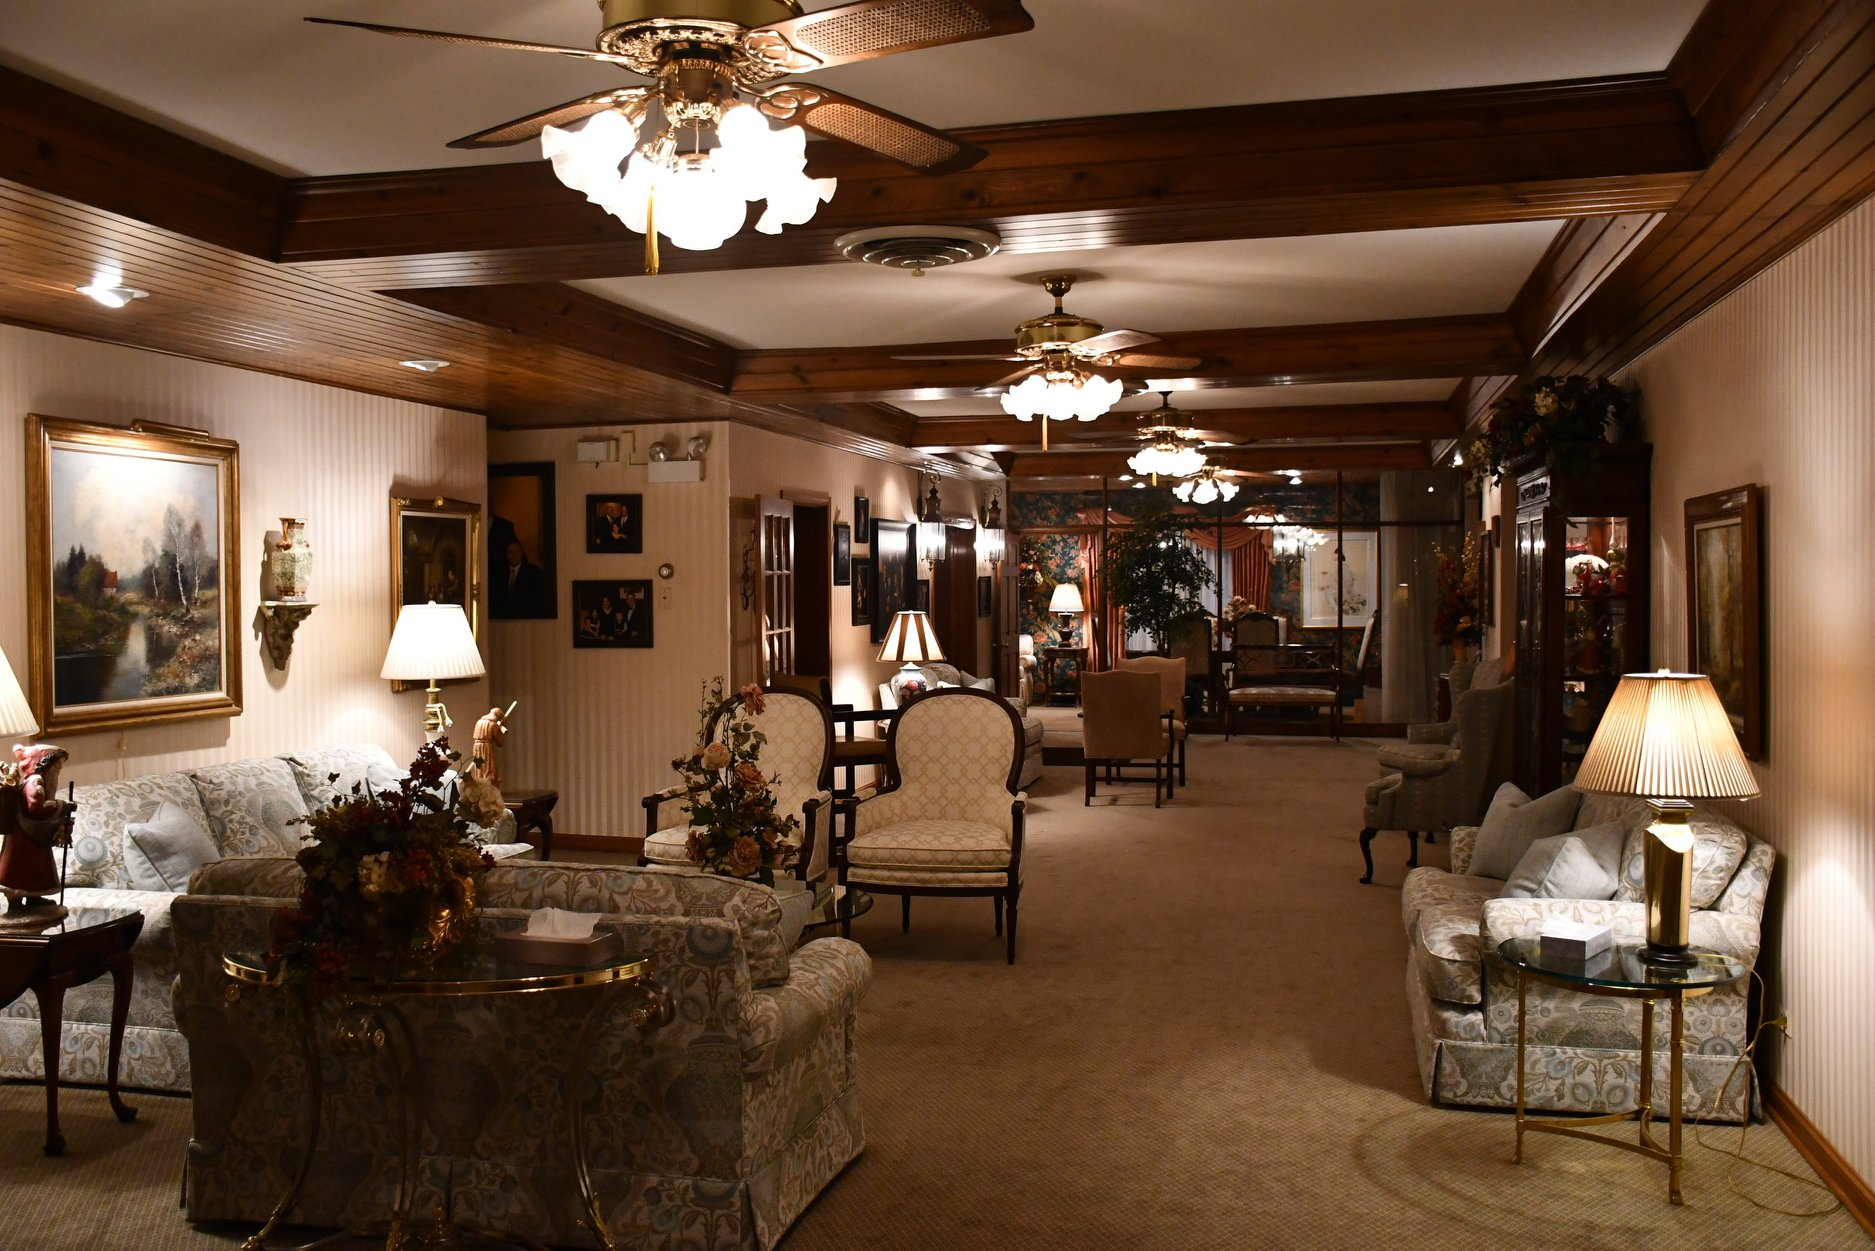 About Top Oak Lawn Funeral Home Thompson Kuenster Funeral Home Thompson Kuenster Funeral Home